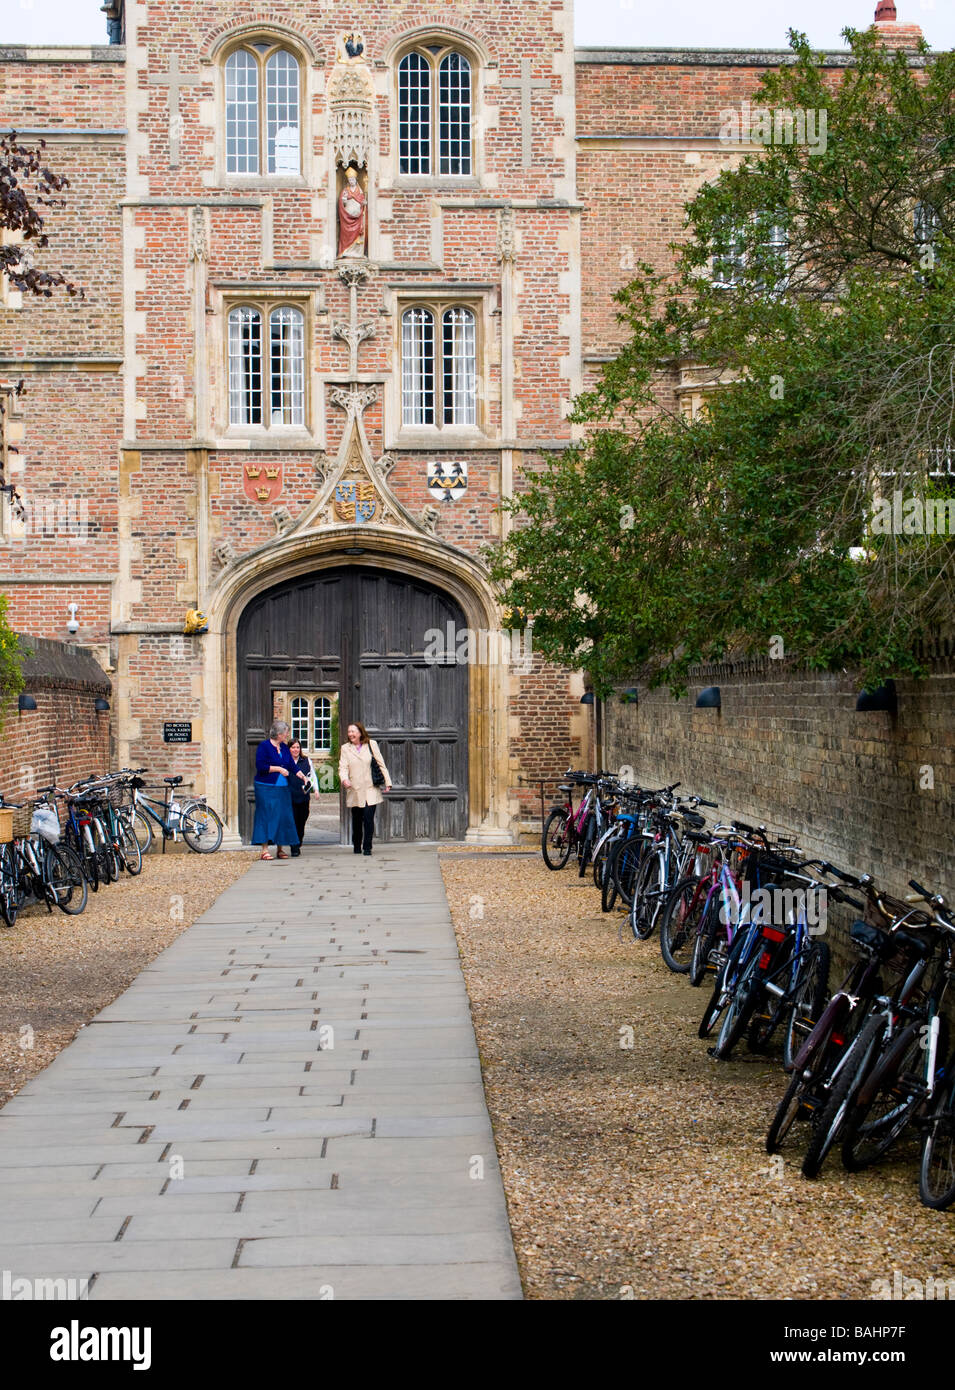 Cambridge, England, UK. Bicycles at entrance to Jesus College Stock Photo